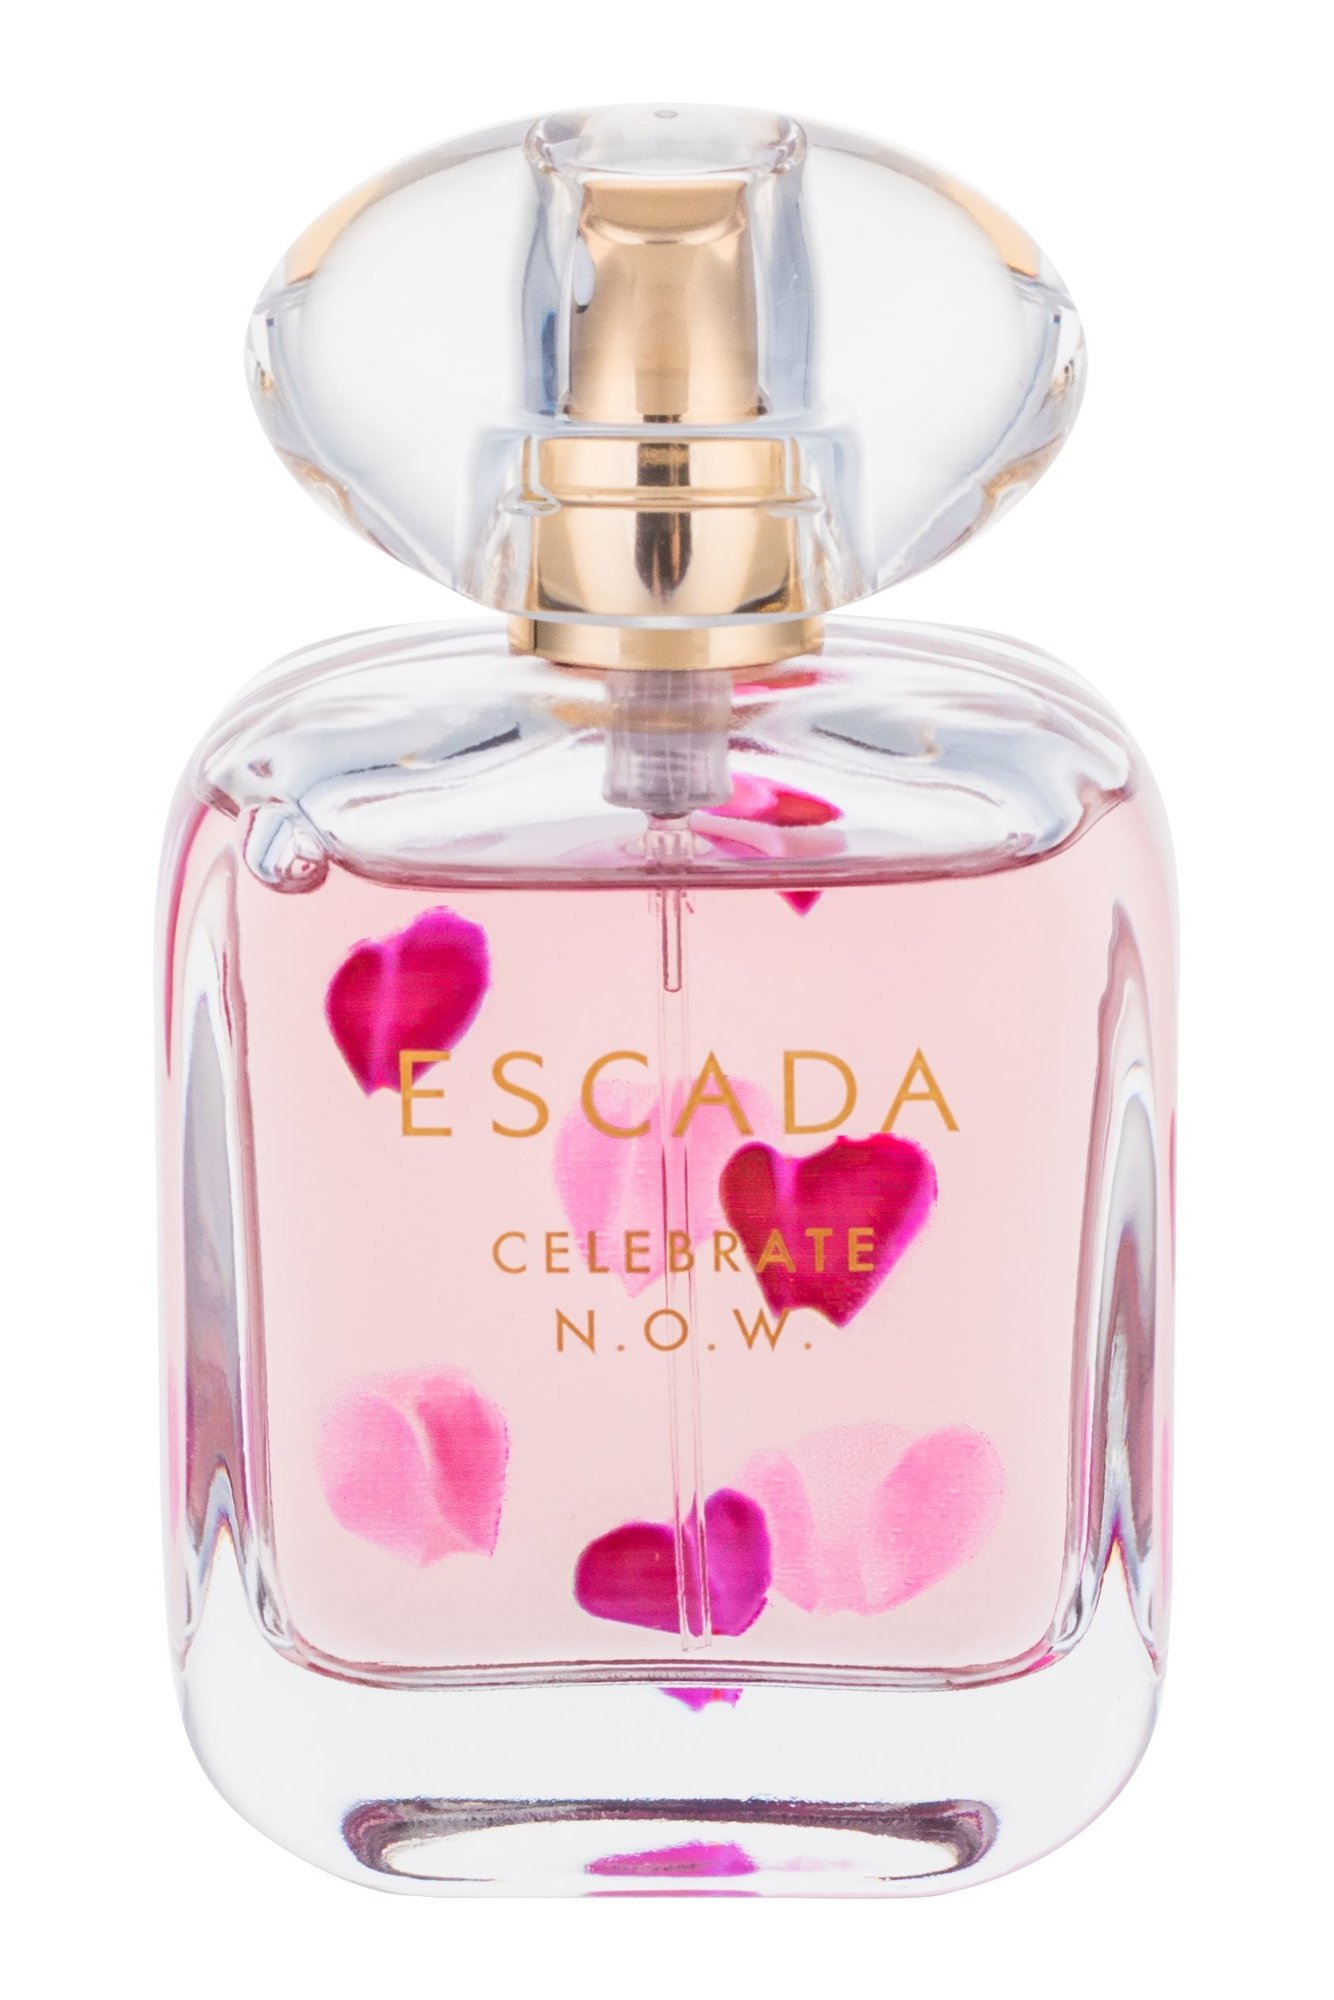 ESCADA Celebrate N.O.W. Eau de Parfum 50ml